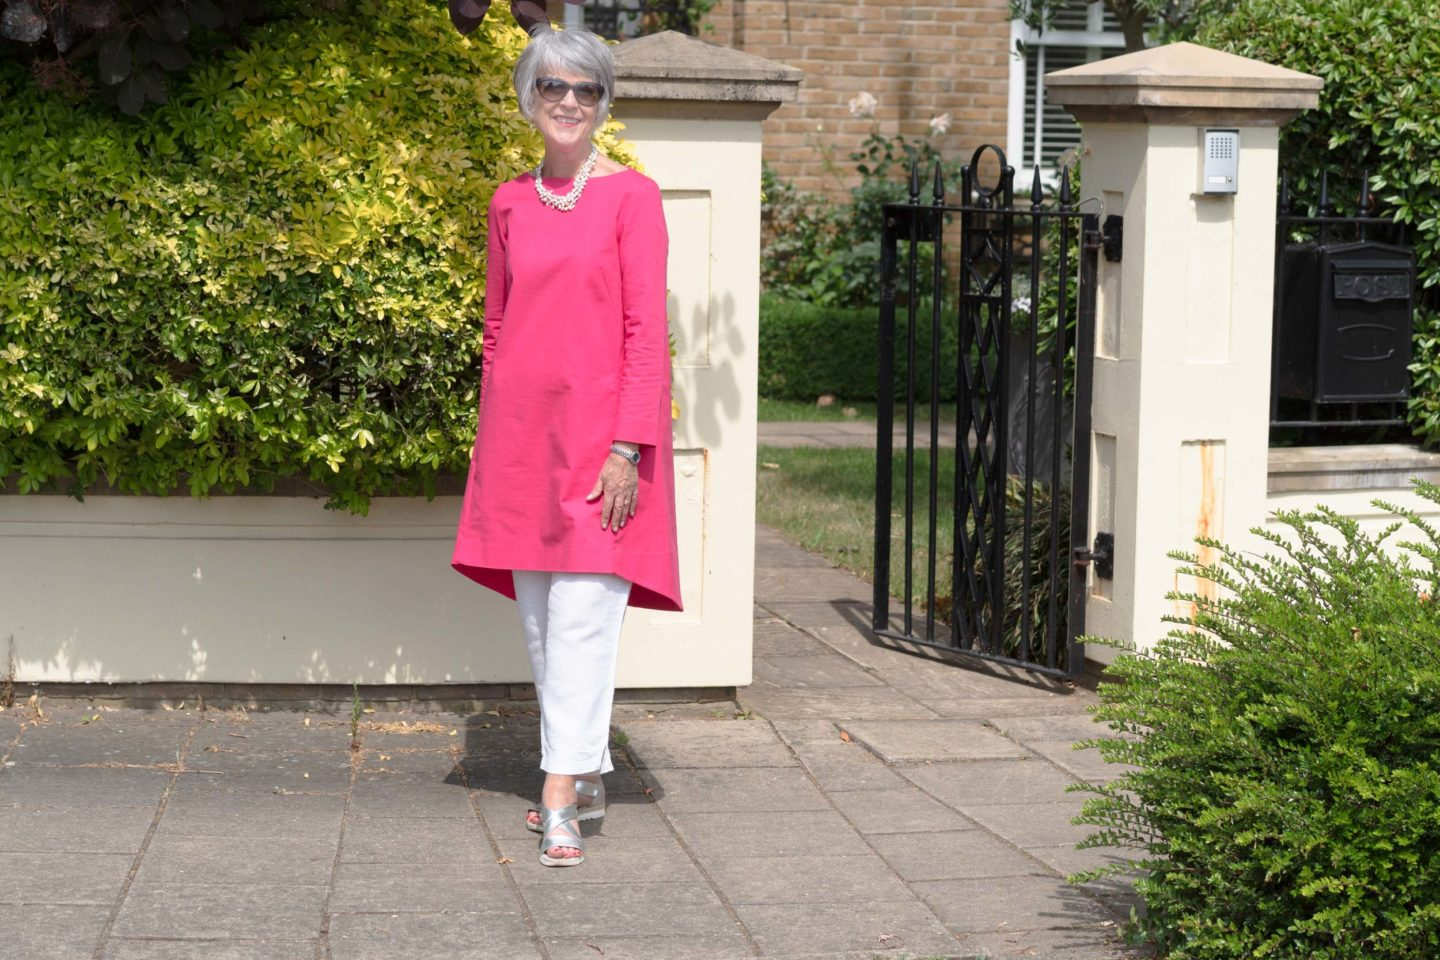 Pink dress and white trousers